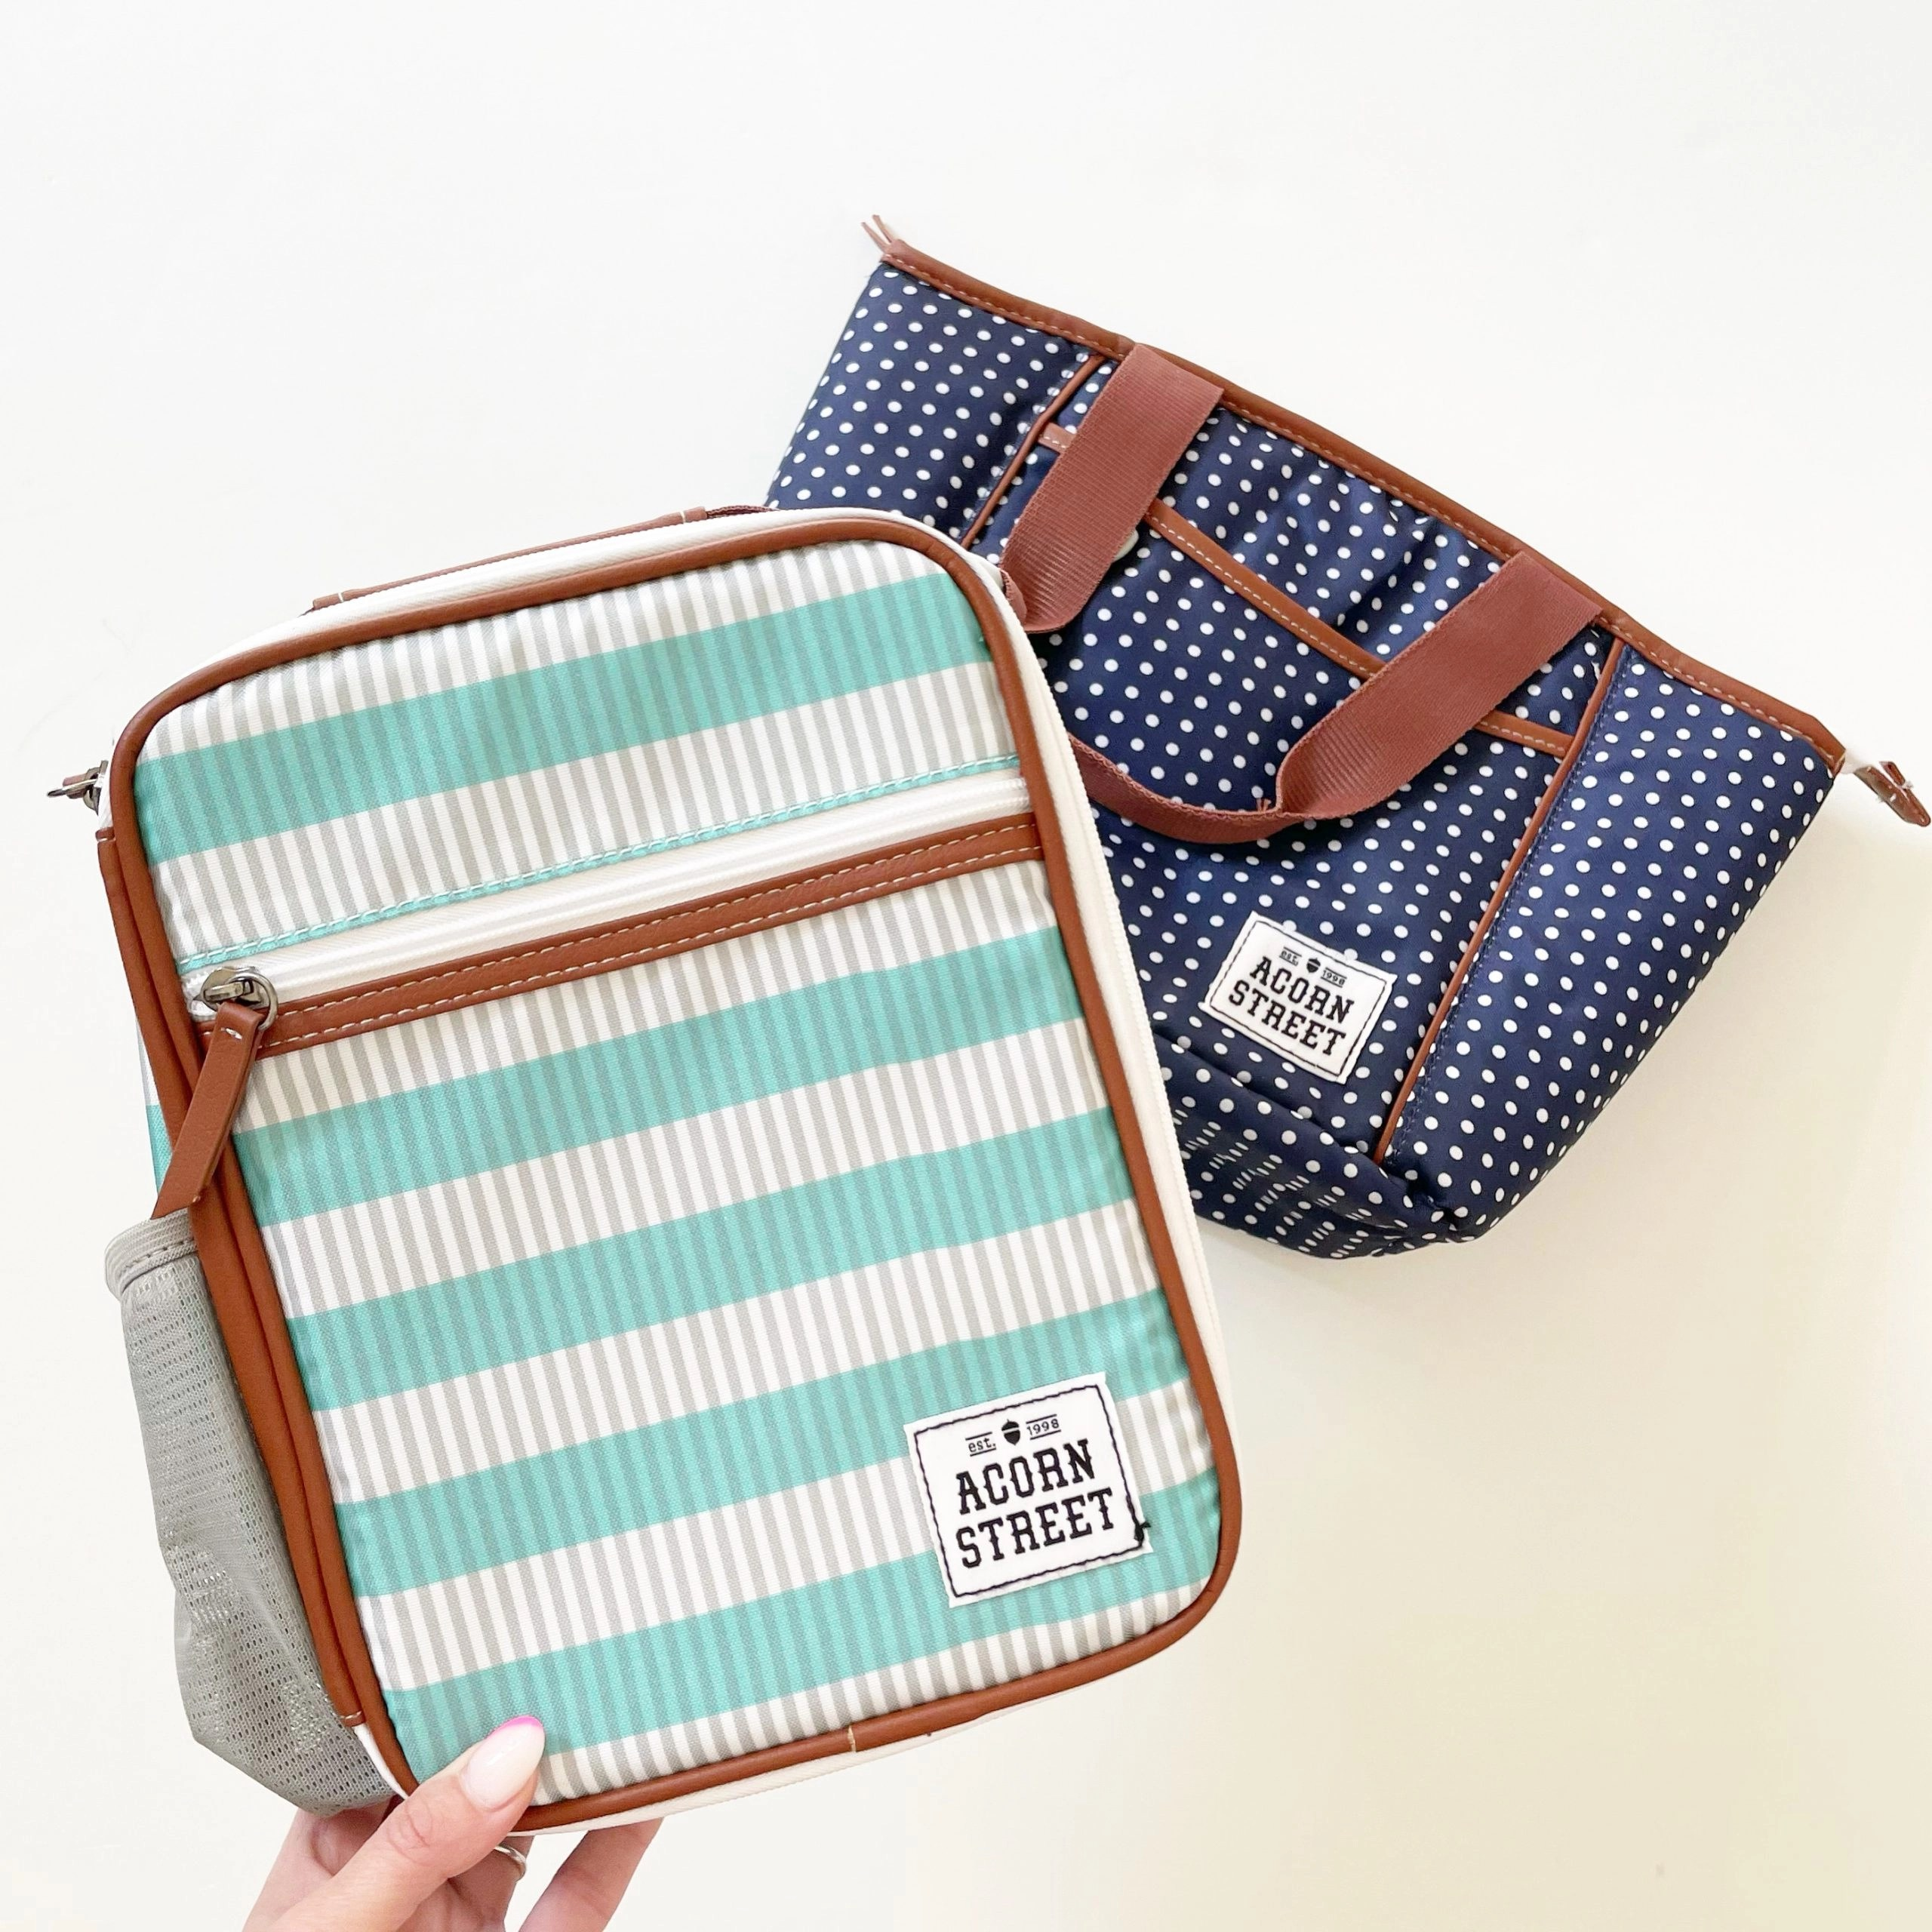 Acorn Street Lunch Bags by Fit + Fresh